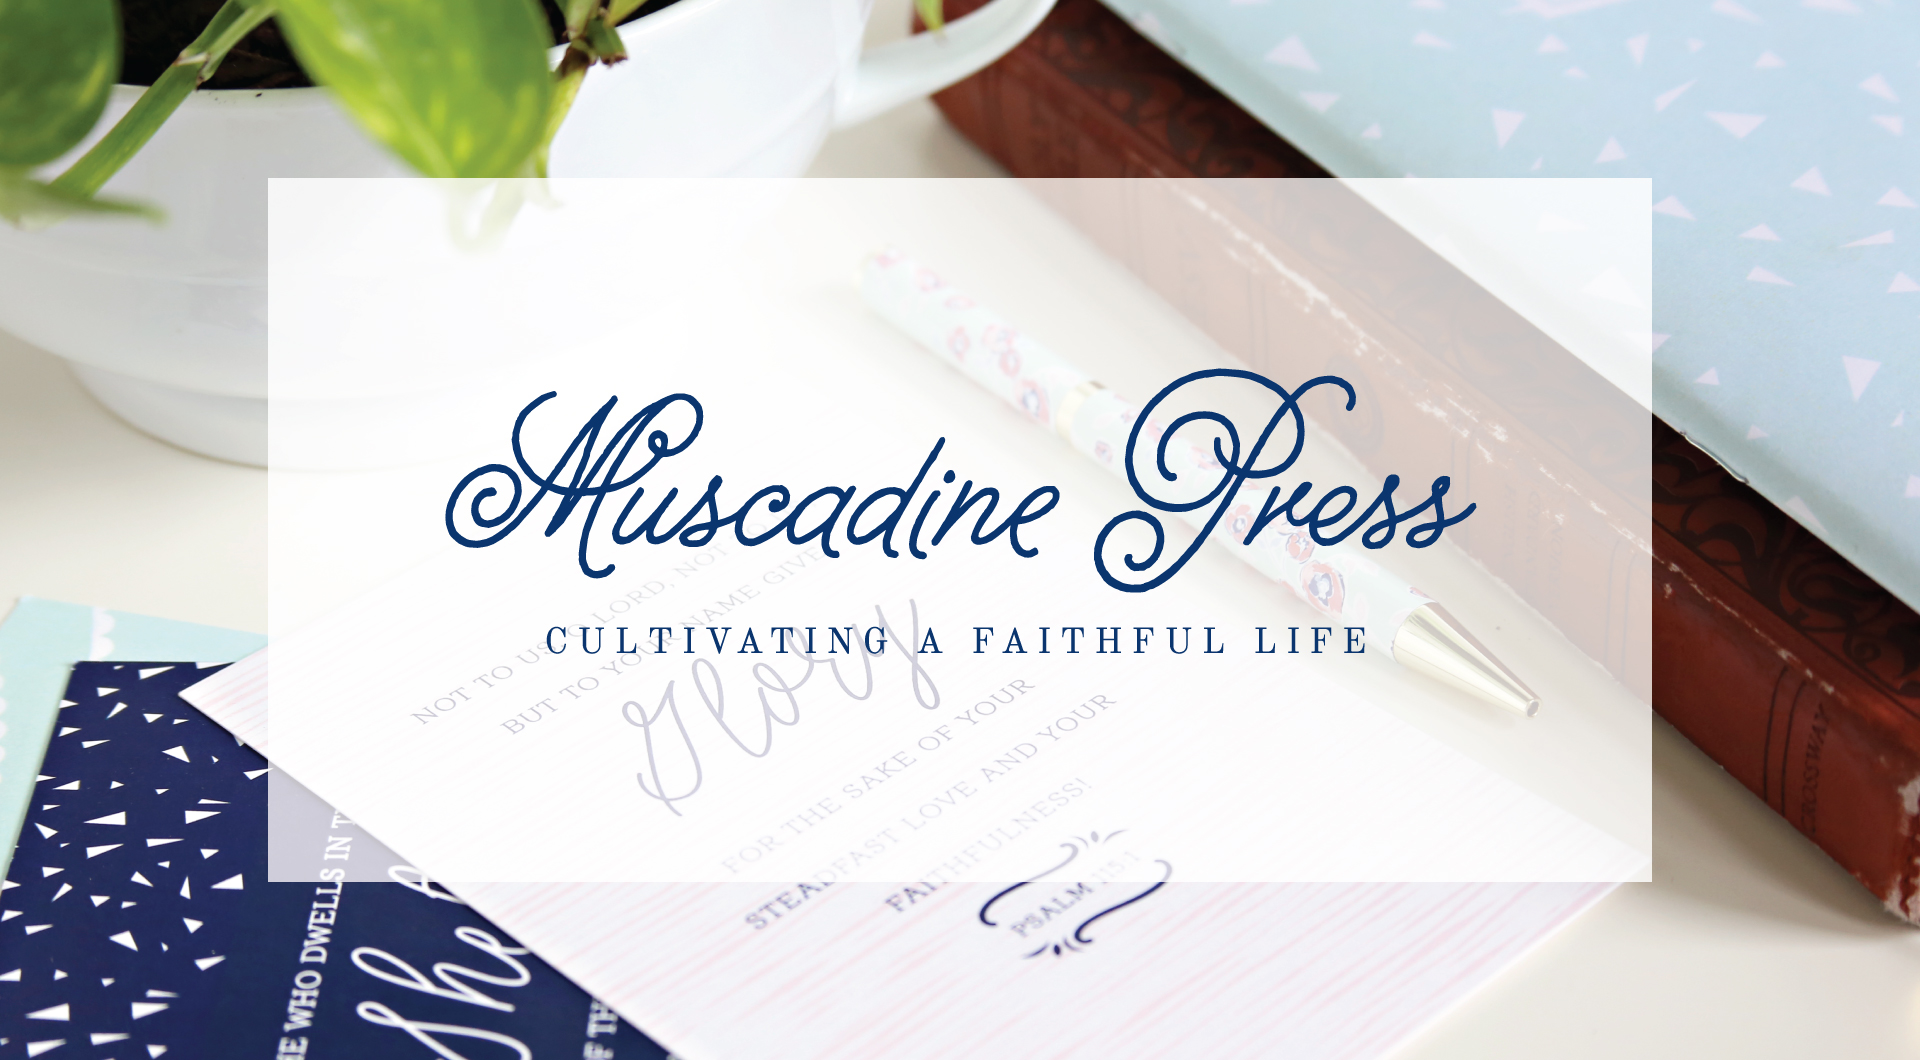 Muscadine Press is dedicated to equipping and empowering women to cultivate faithfulness day in and day out.